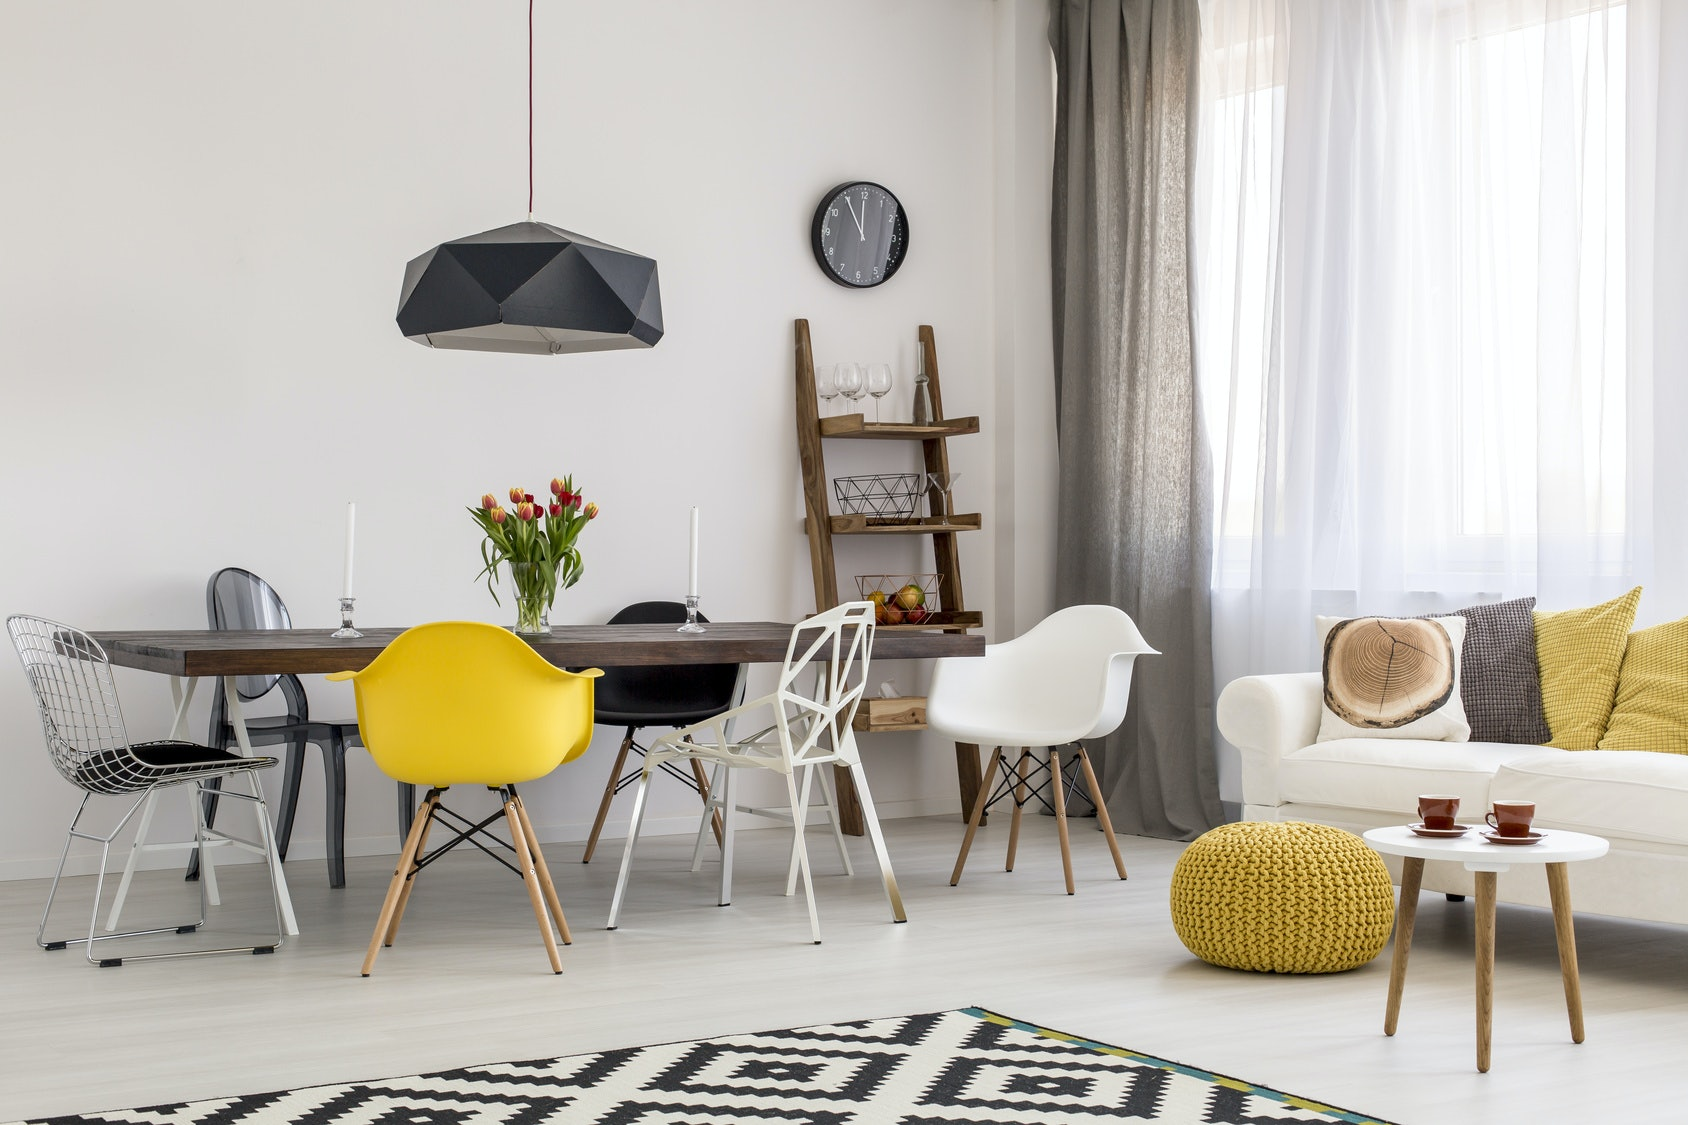 Home Decor Stores Like Urban Outfitters 100 Home Decor